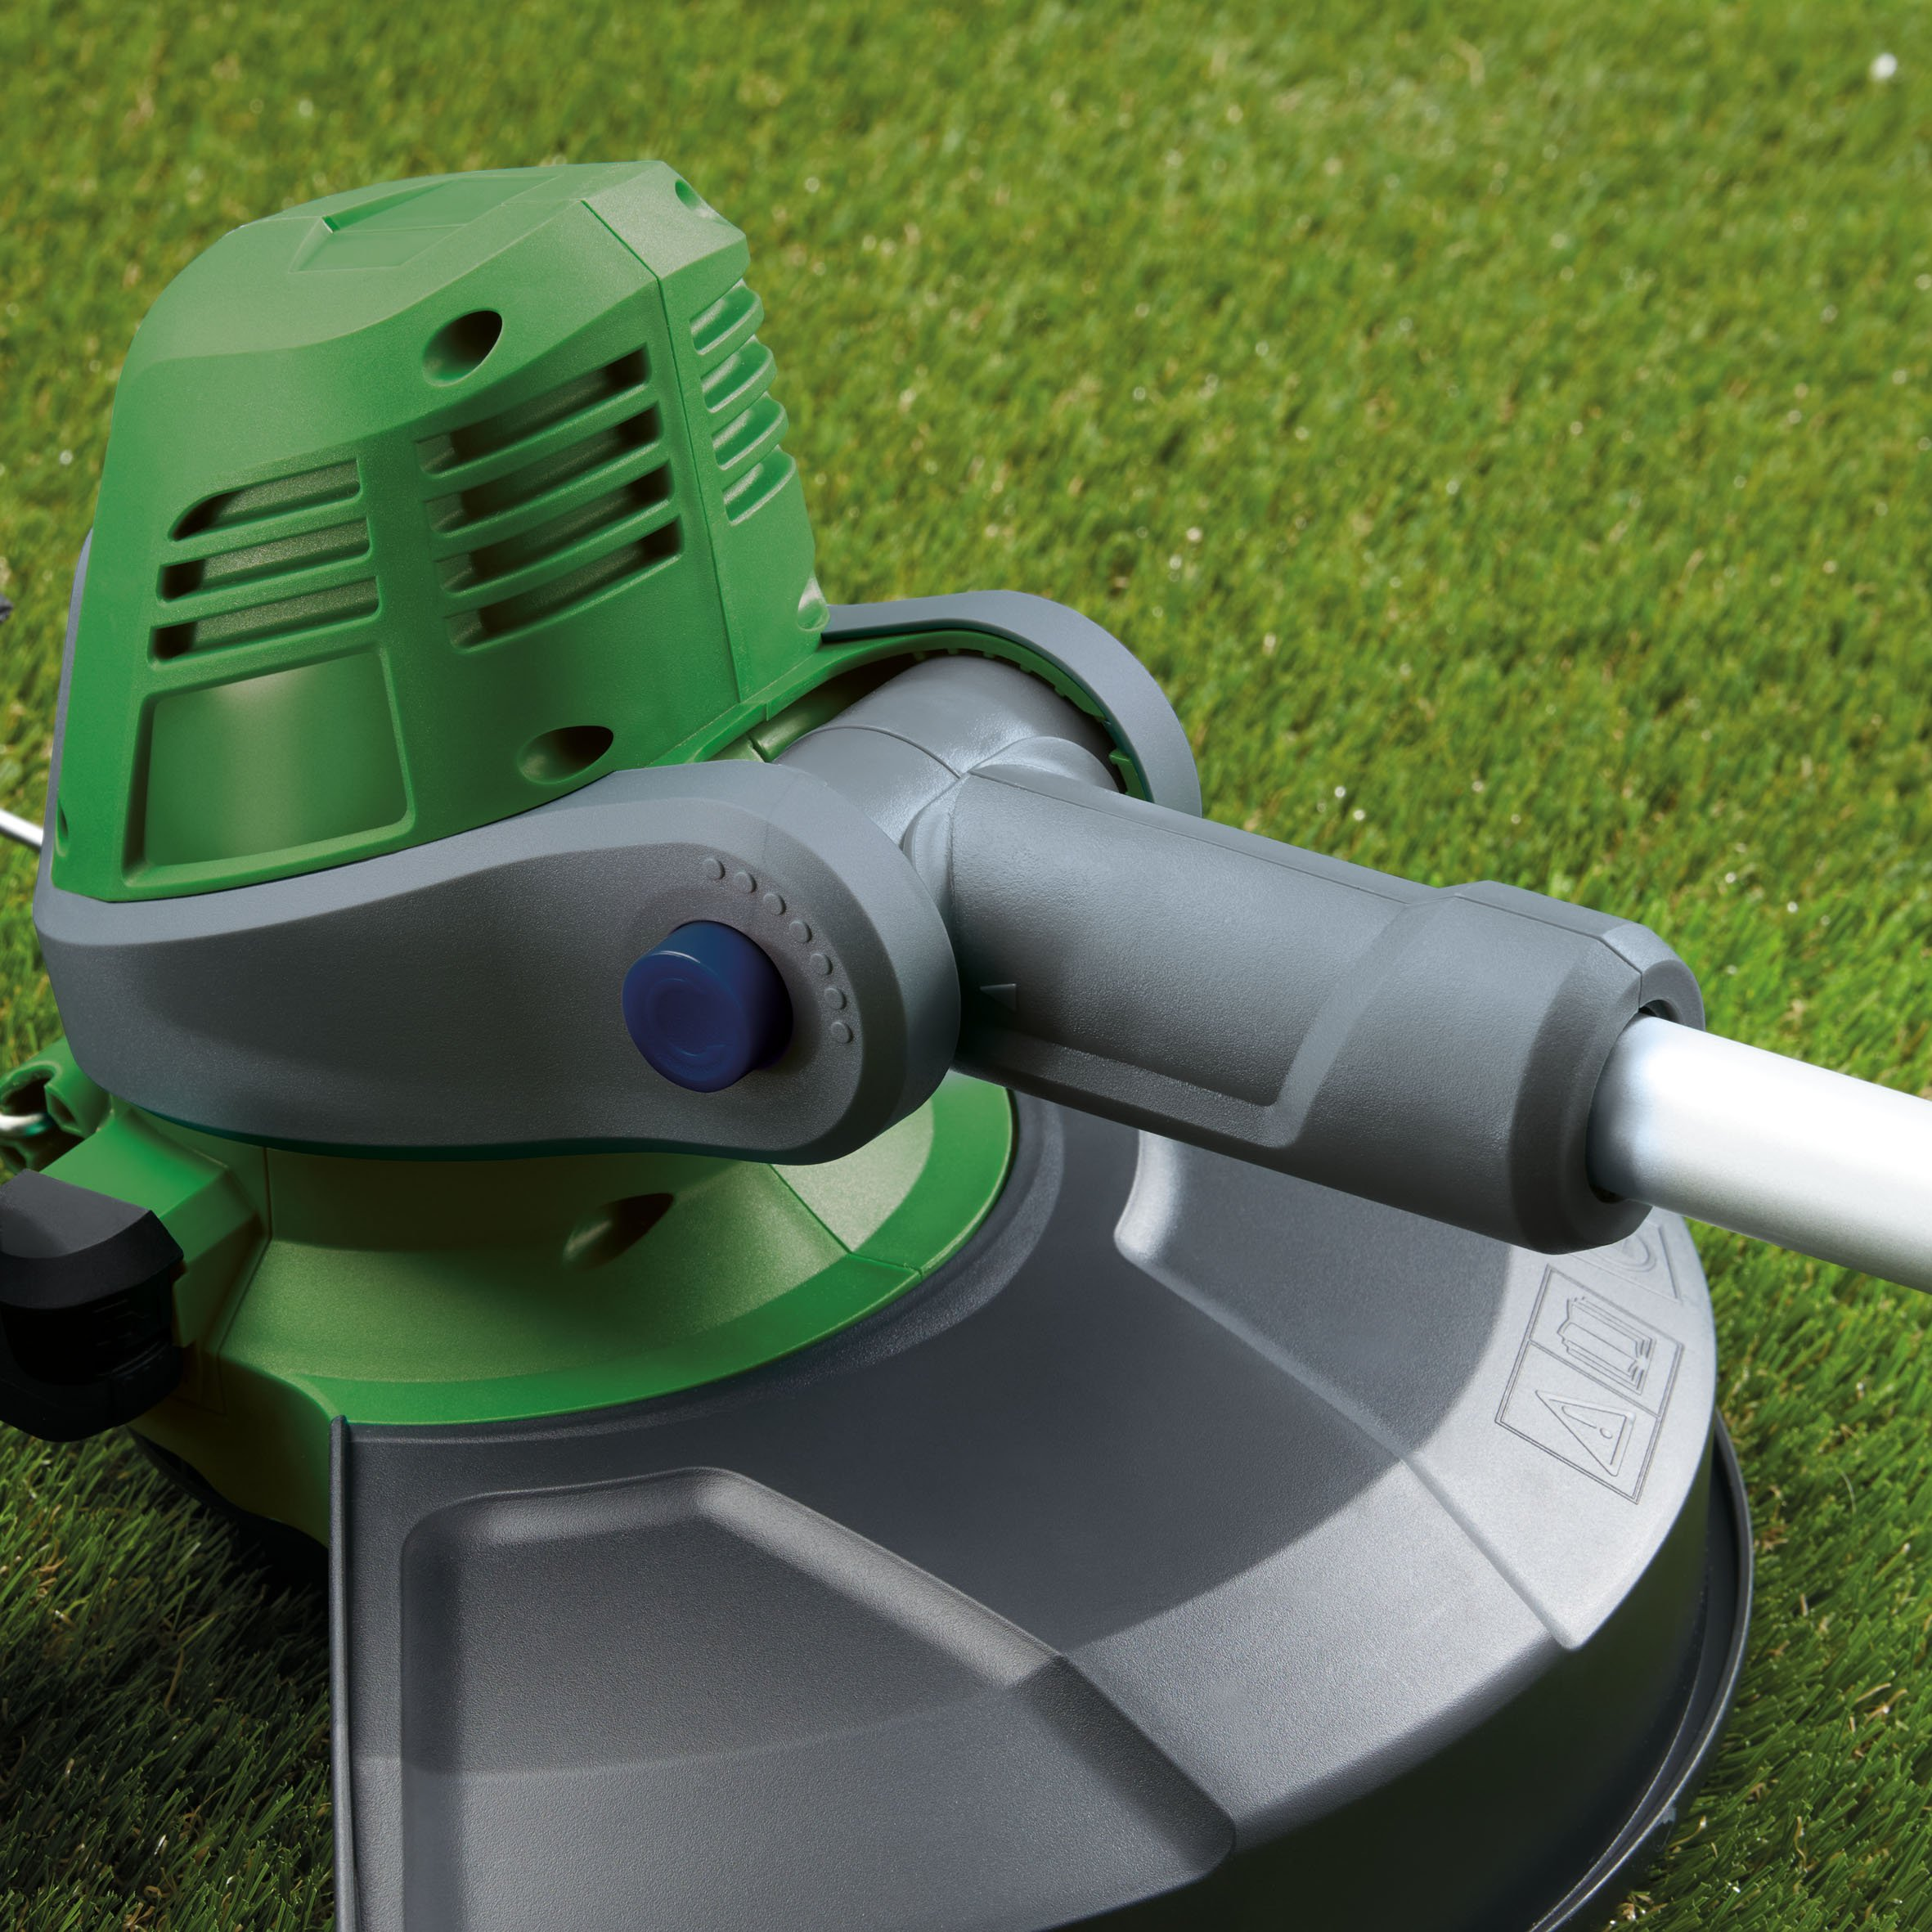 Powerbase Grass Trimmer Buying Guide